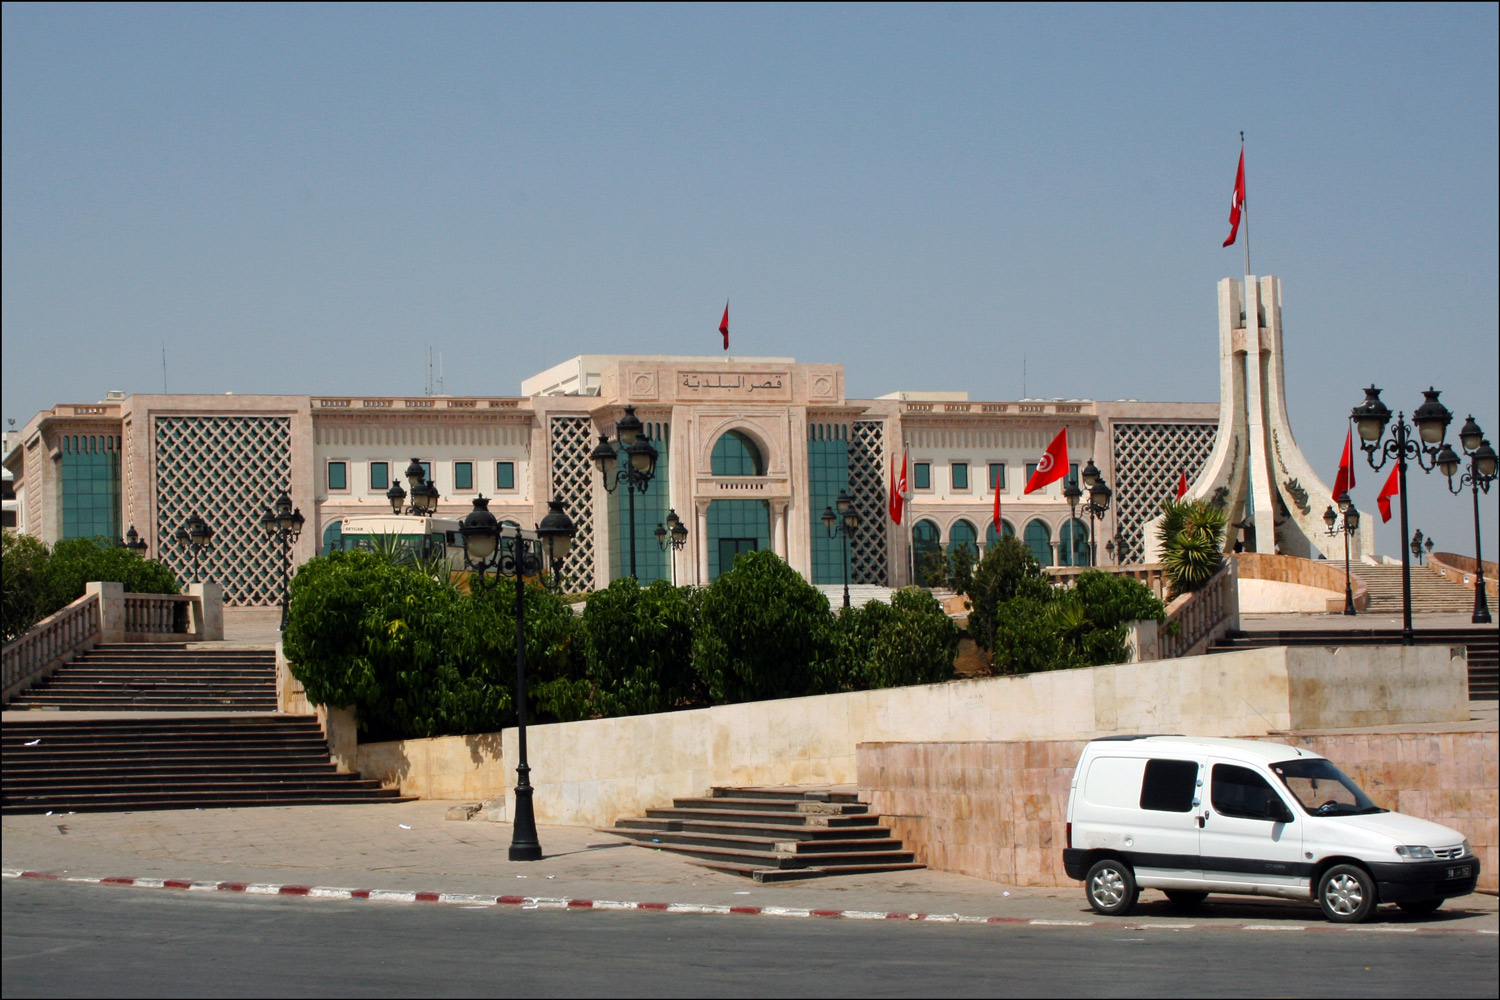 Tunis City Hall